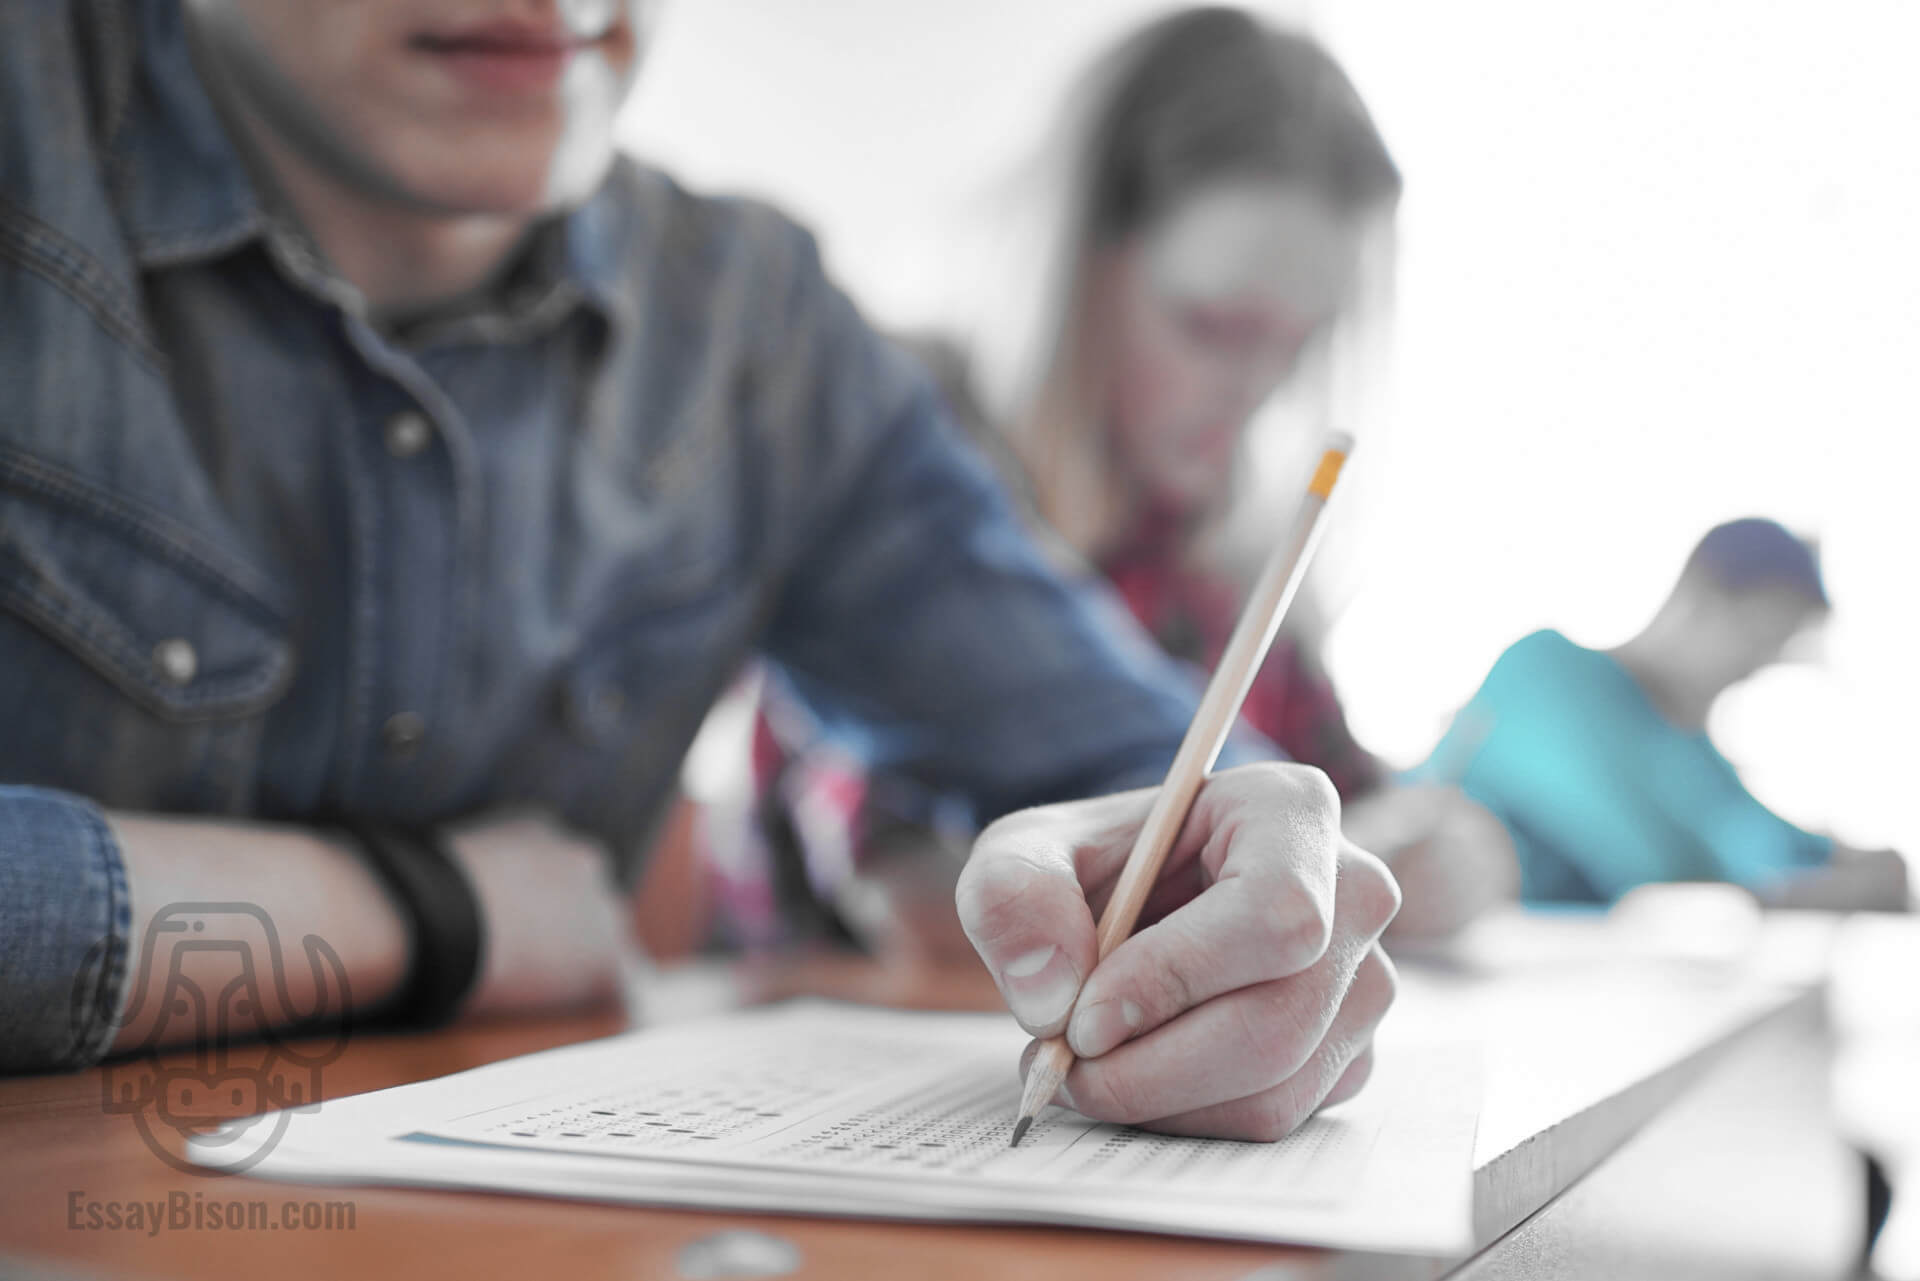 Excellent essay writing